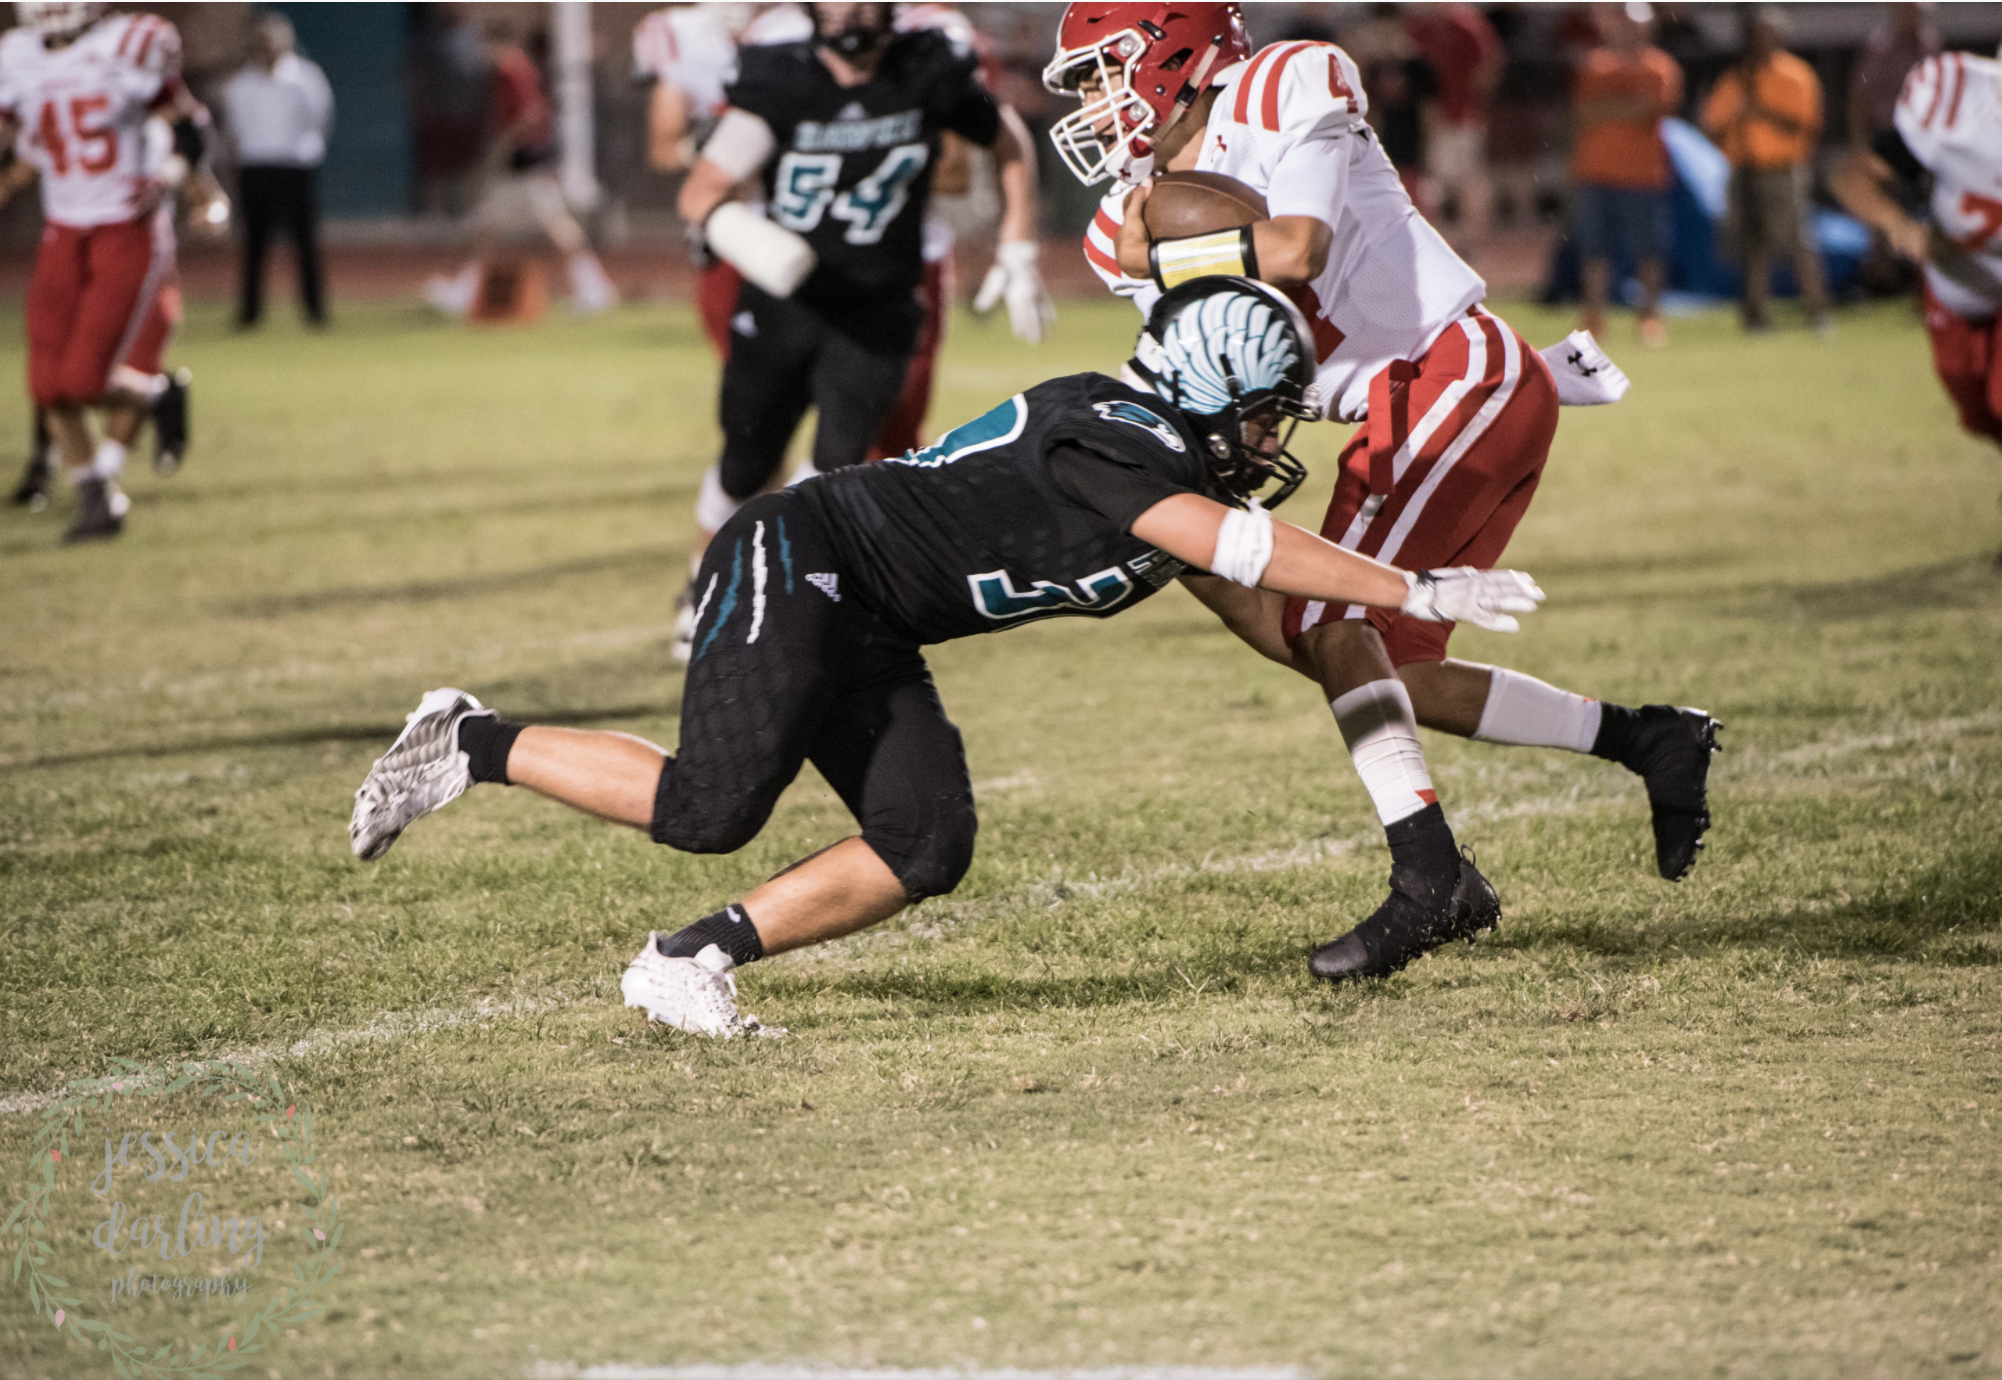 Highland H.S. vs. Brophy College Prep 9.8.17 picture #2